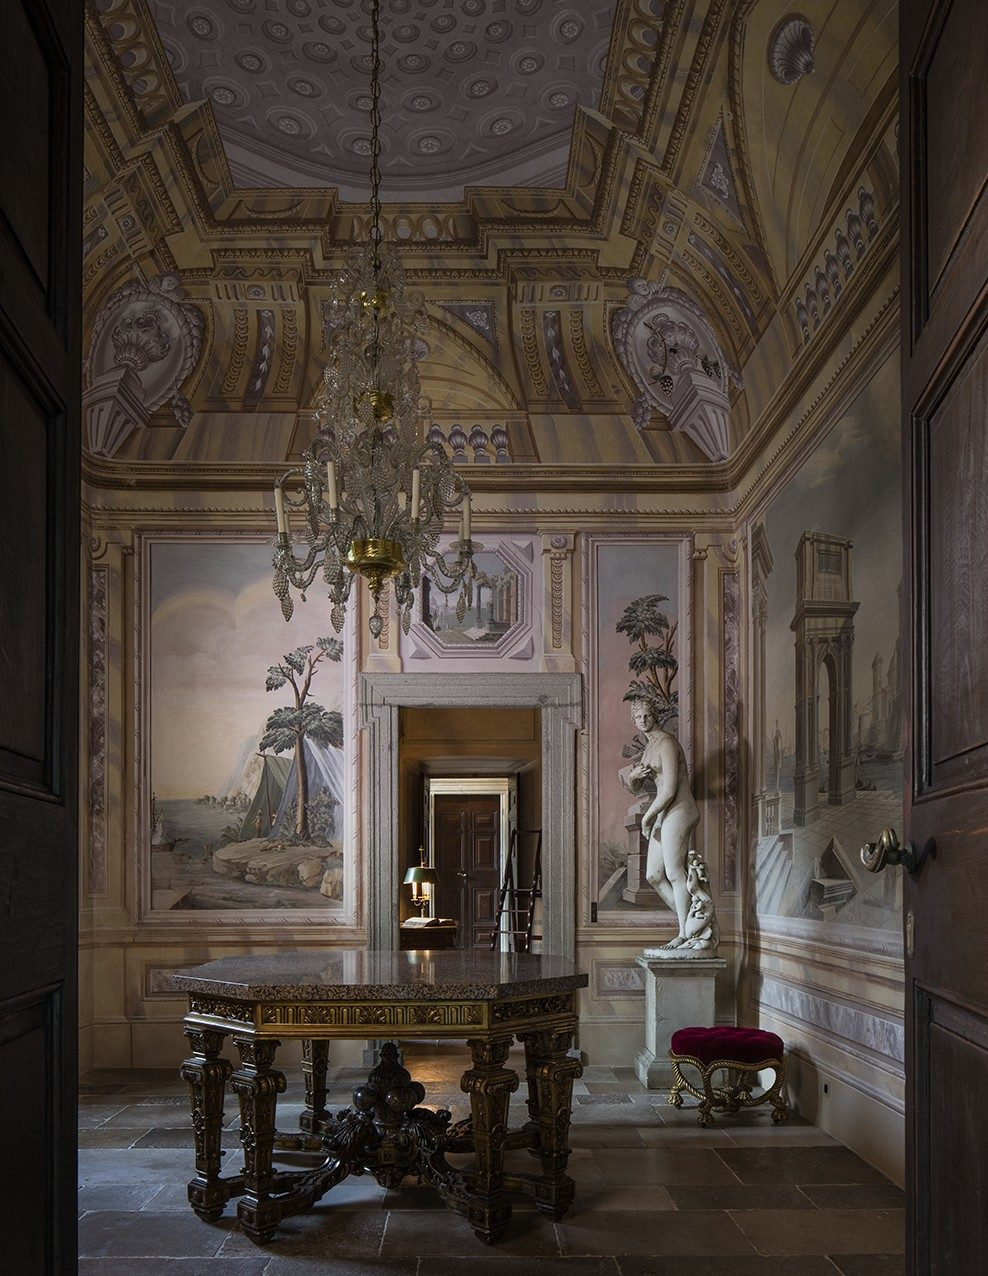 Villa Balbiano luxury private residence property Lake Como 17 century classic lavish best interiors antique collection Suites bedrooms accommodatiom living room marble statue e1573831729239